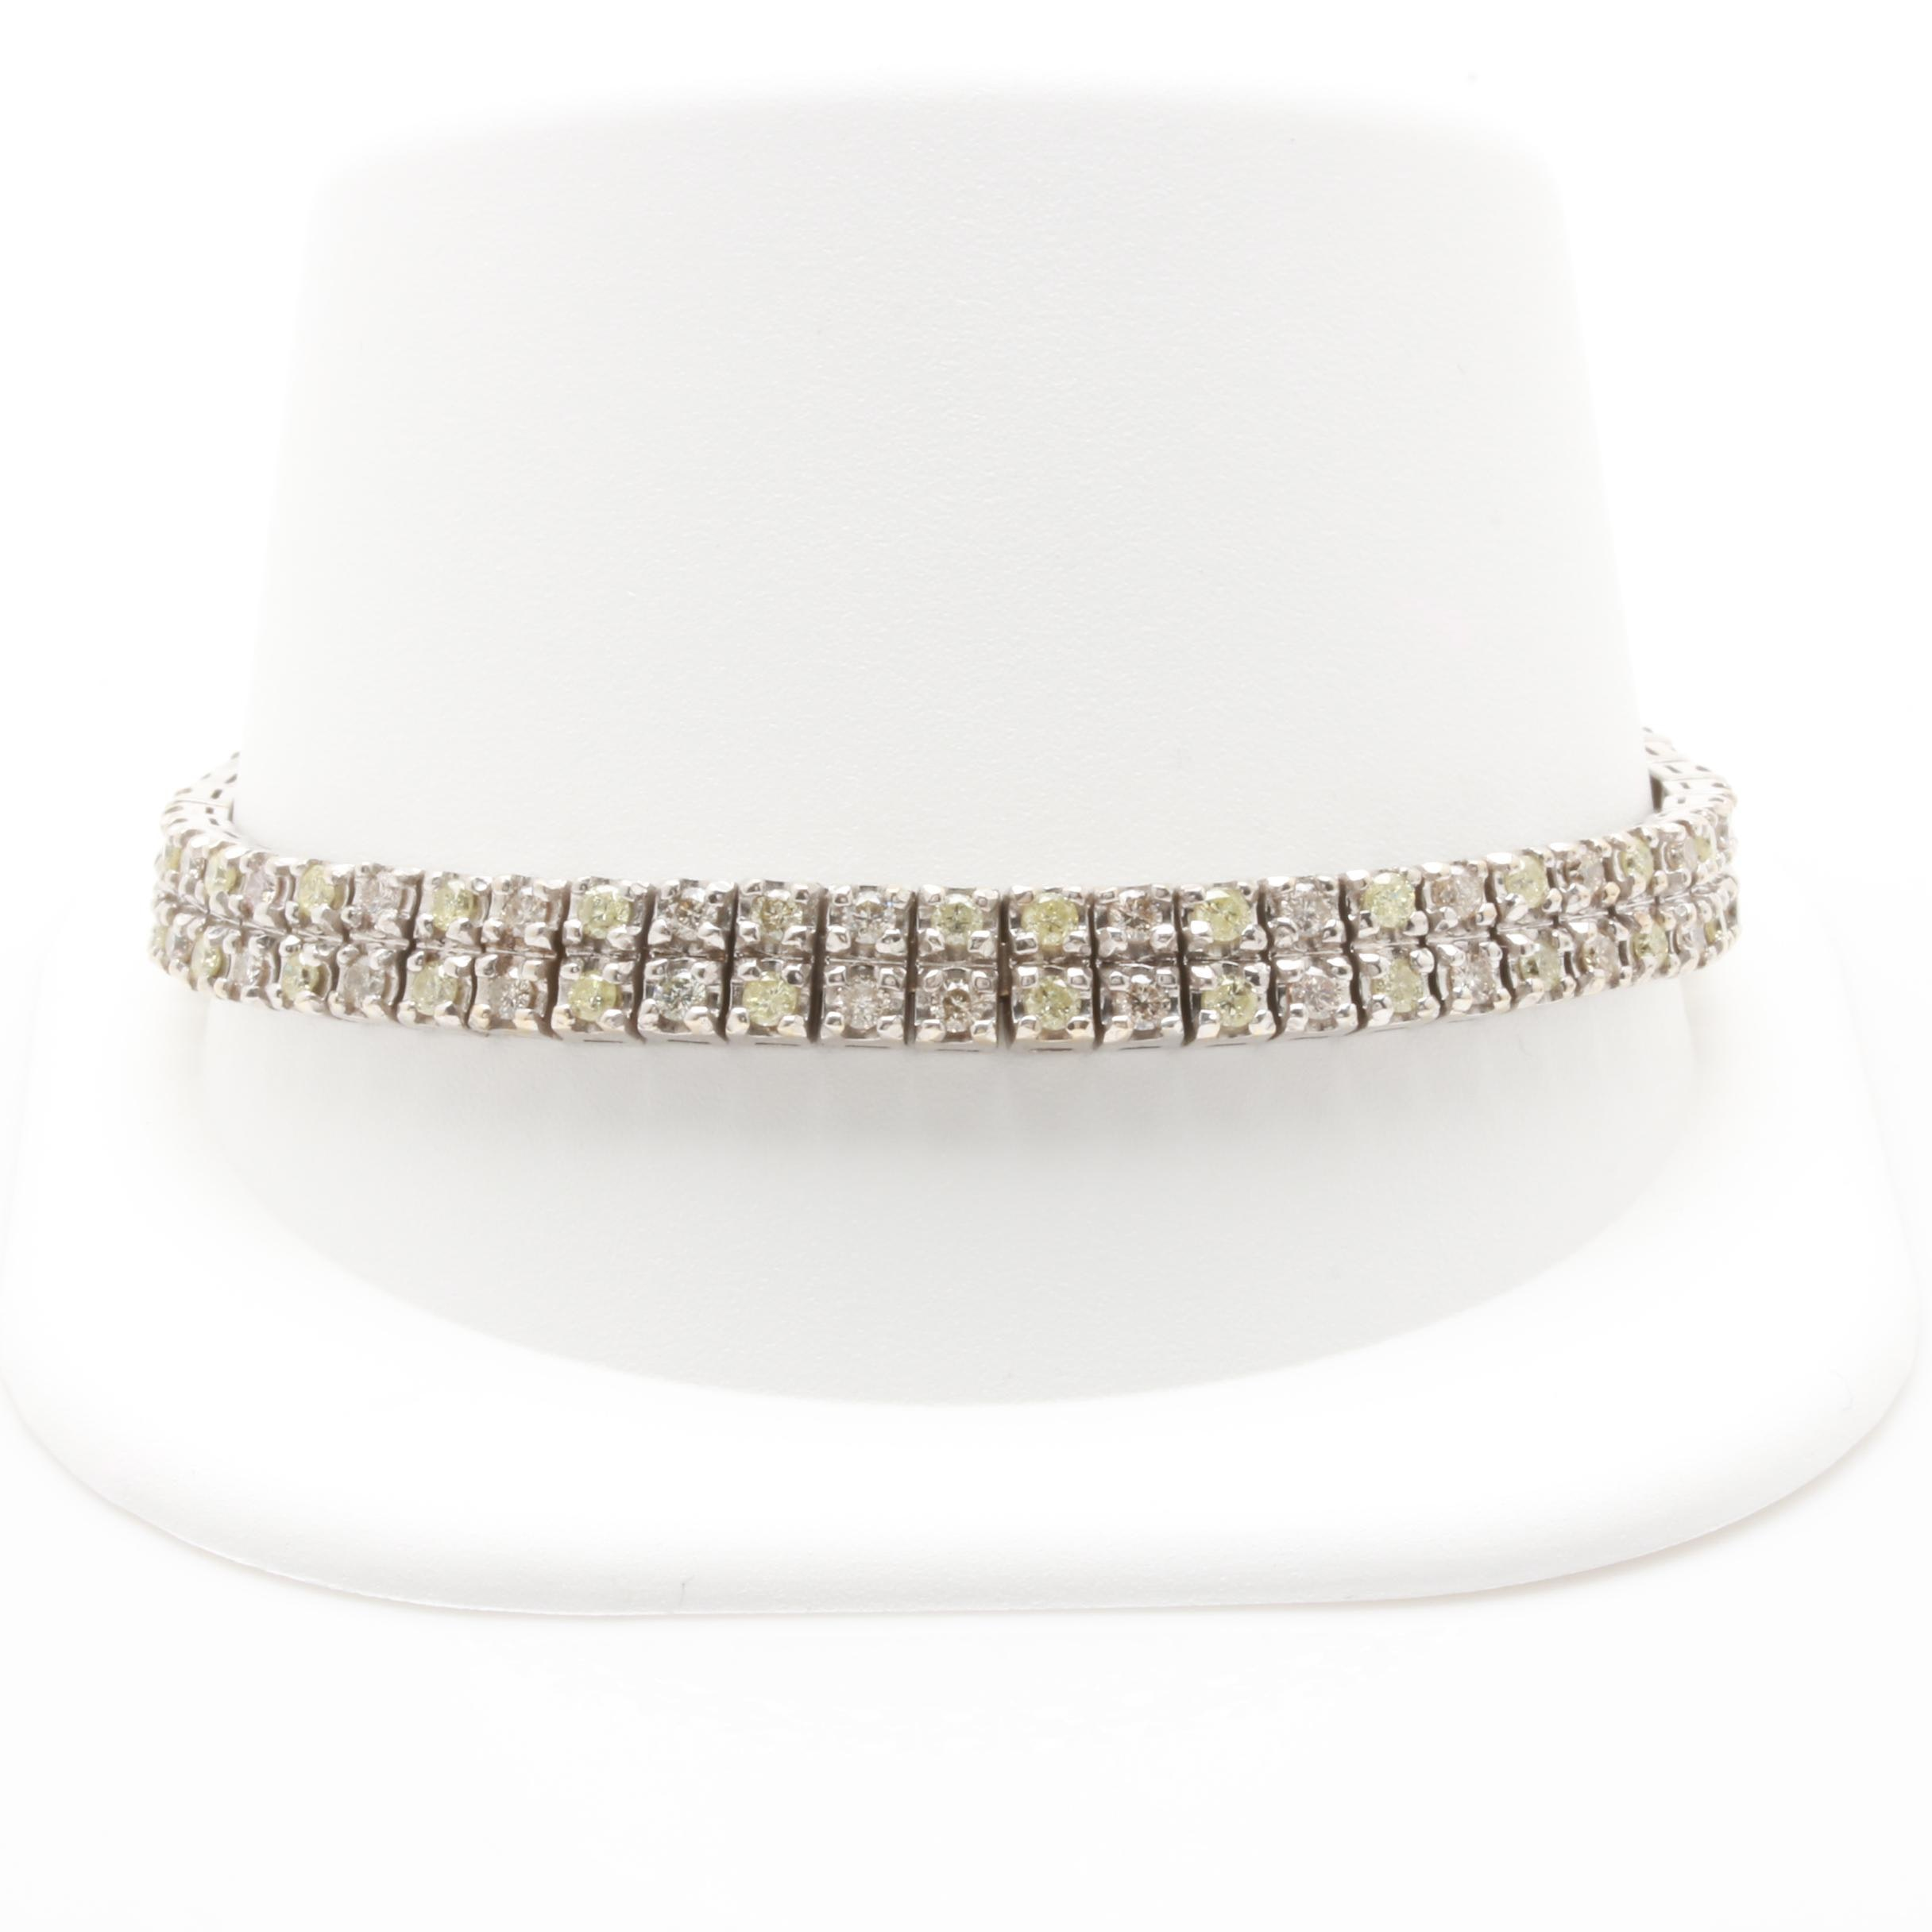 14K White Gold 3.97 CTW Diamond Link Bracelet